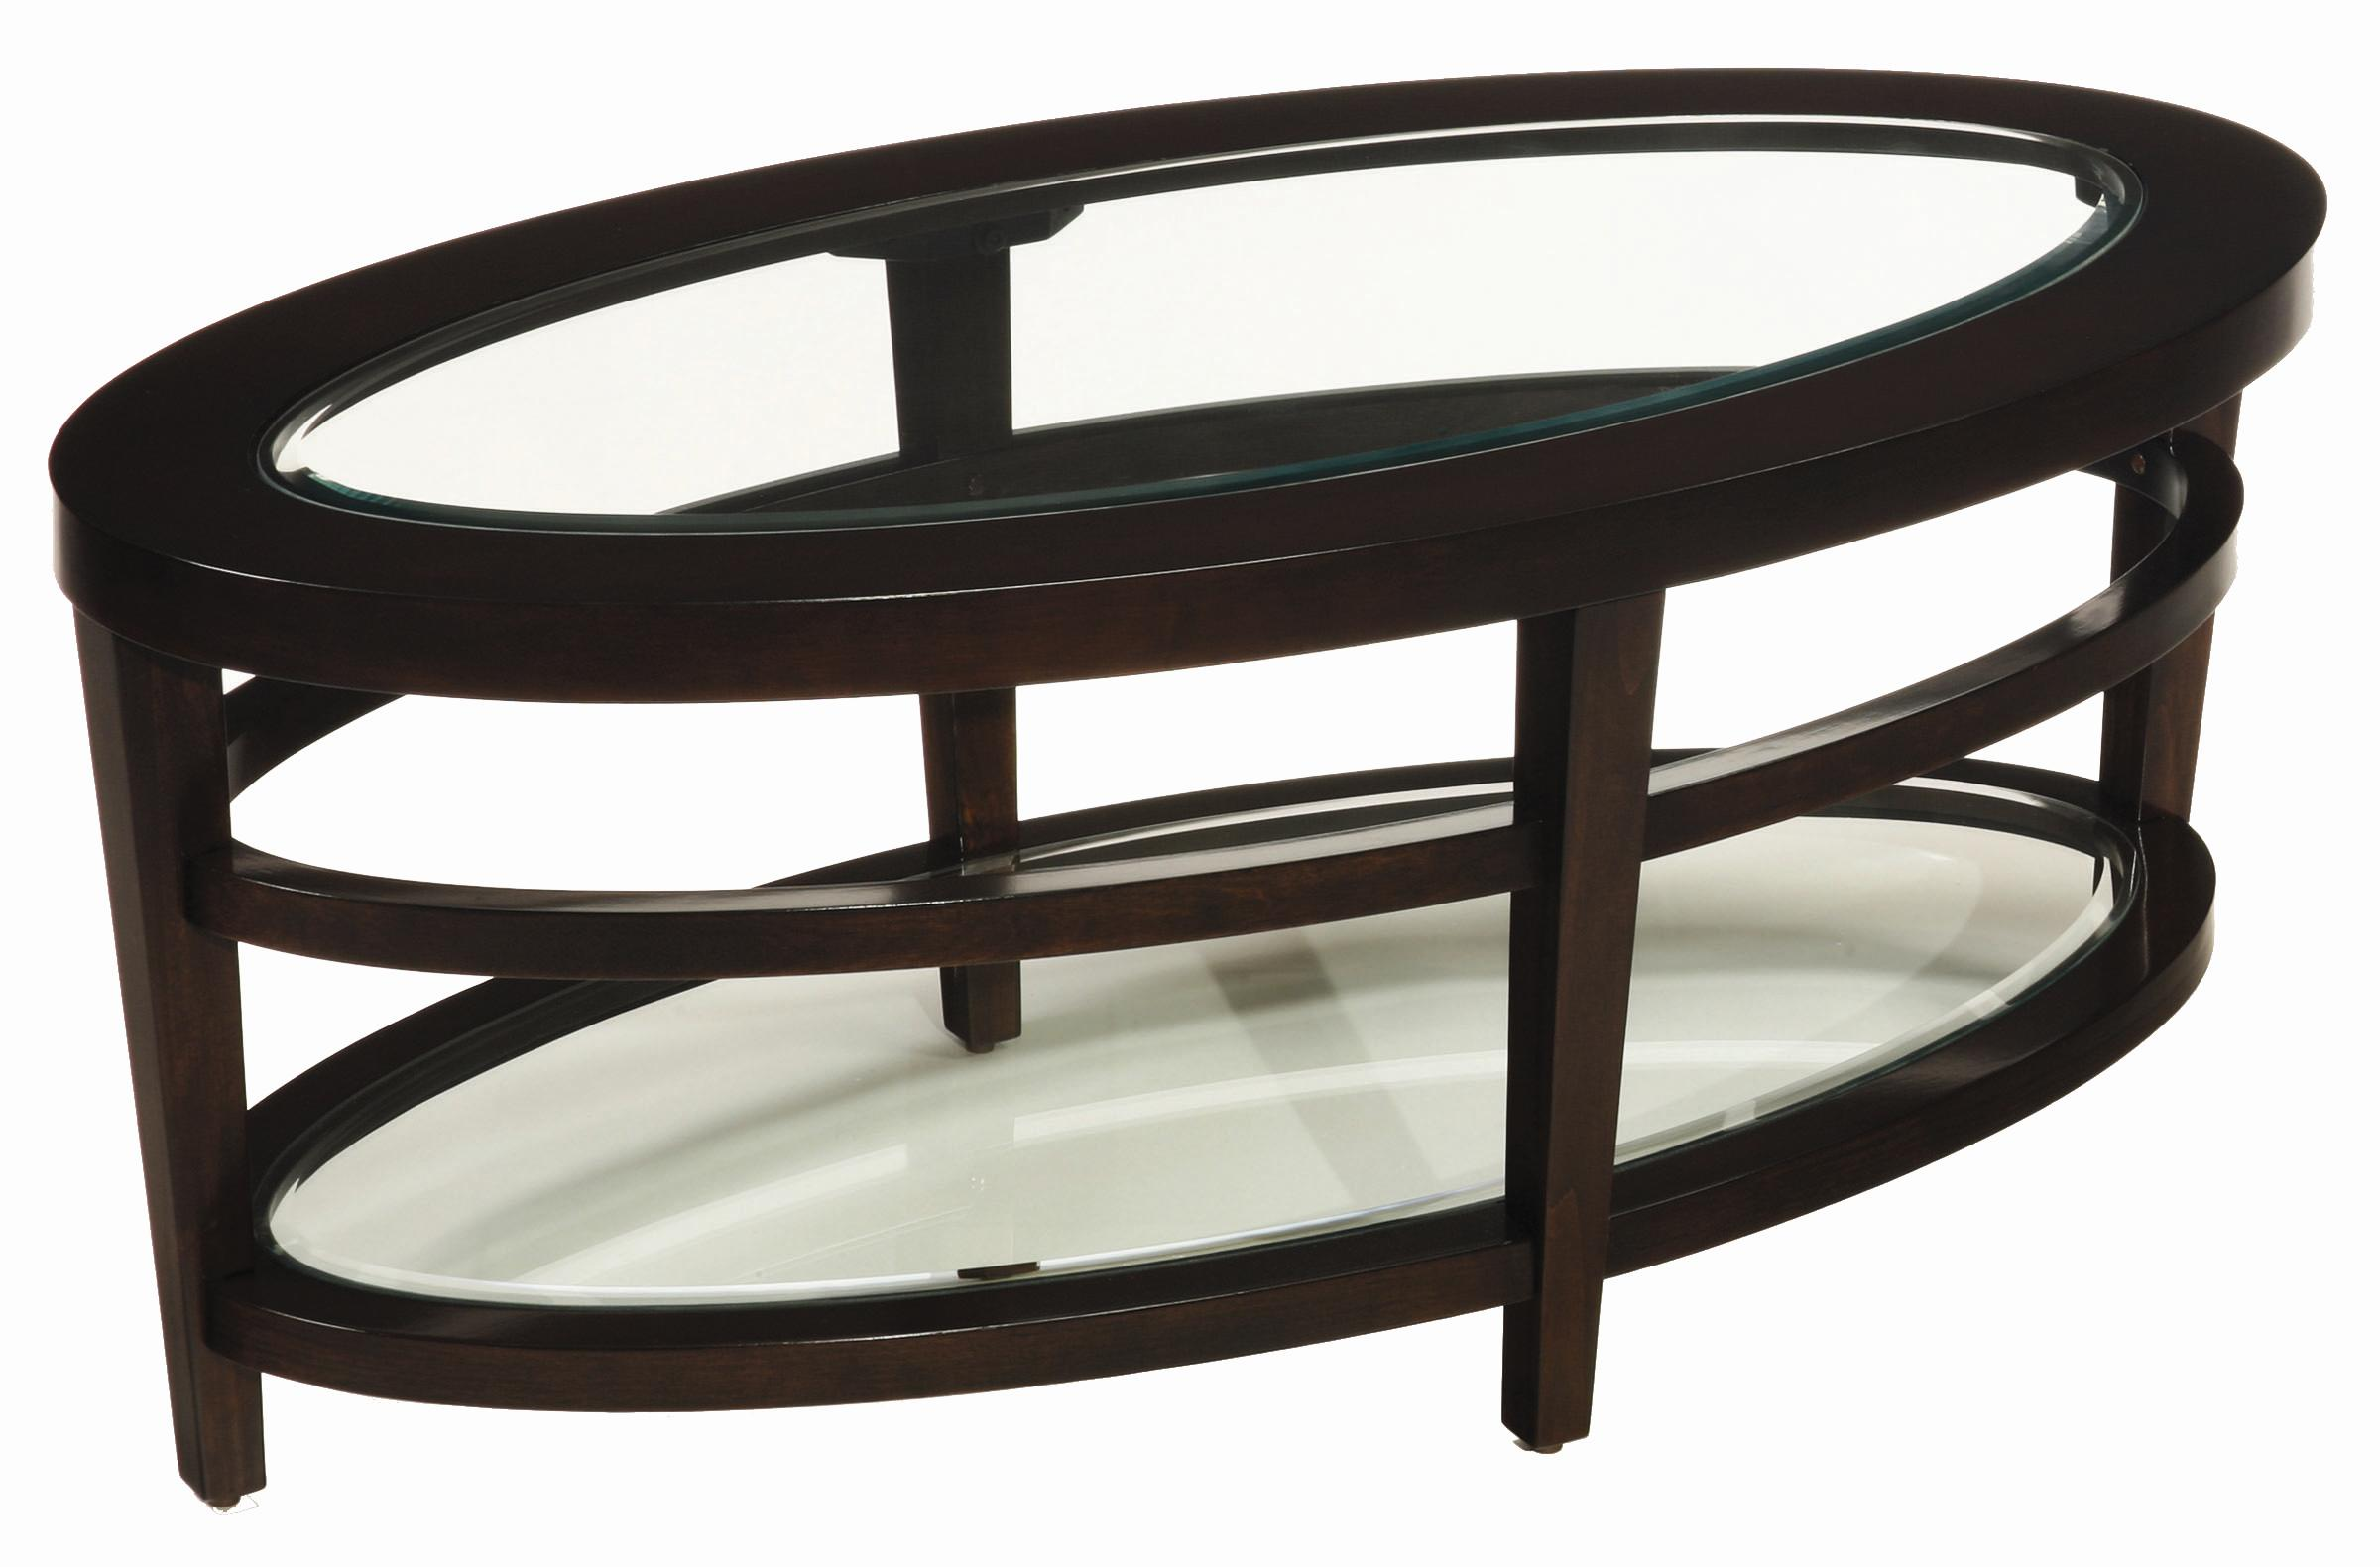 Atwell Atwell Ave Cocktail Table by Hammary at Morris Home